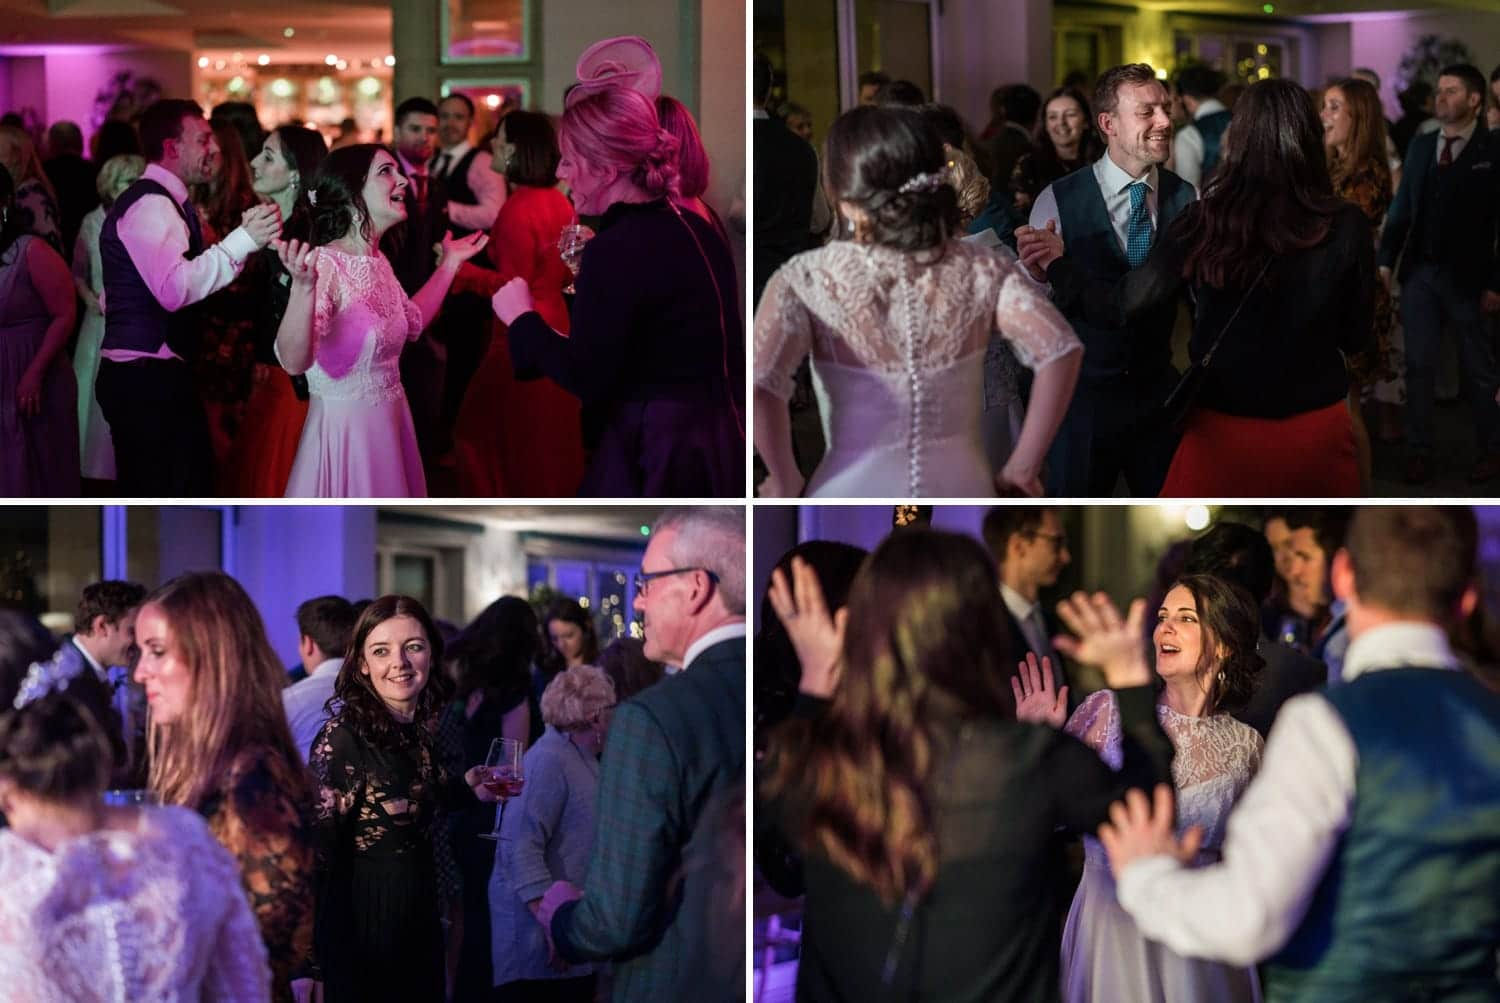 Wedding dancing at Holm House in South Wales